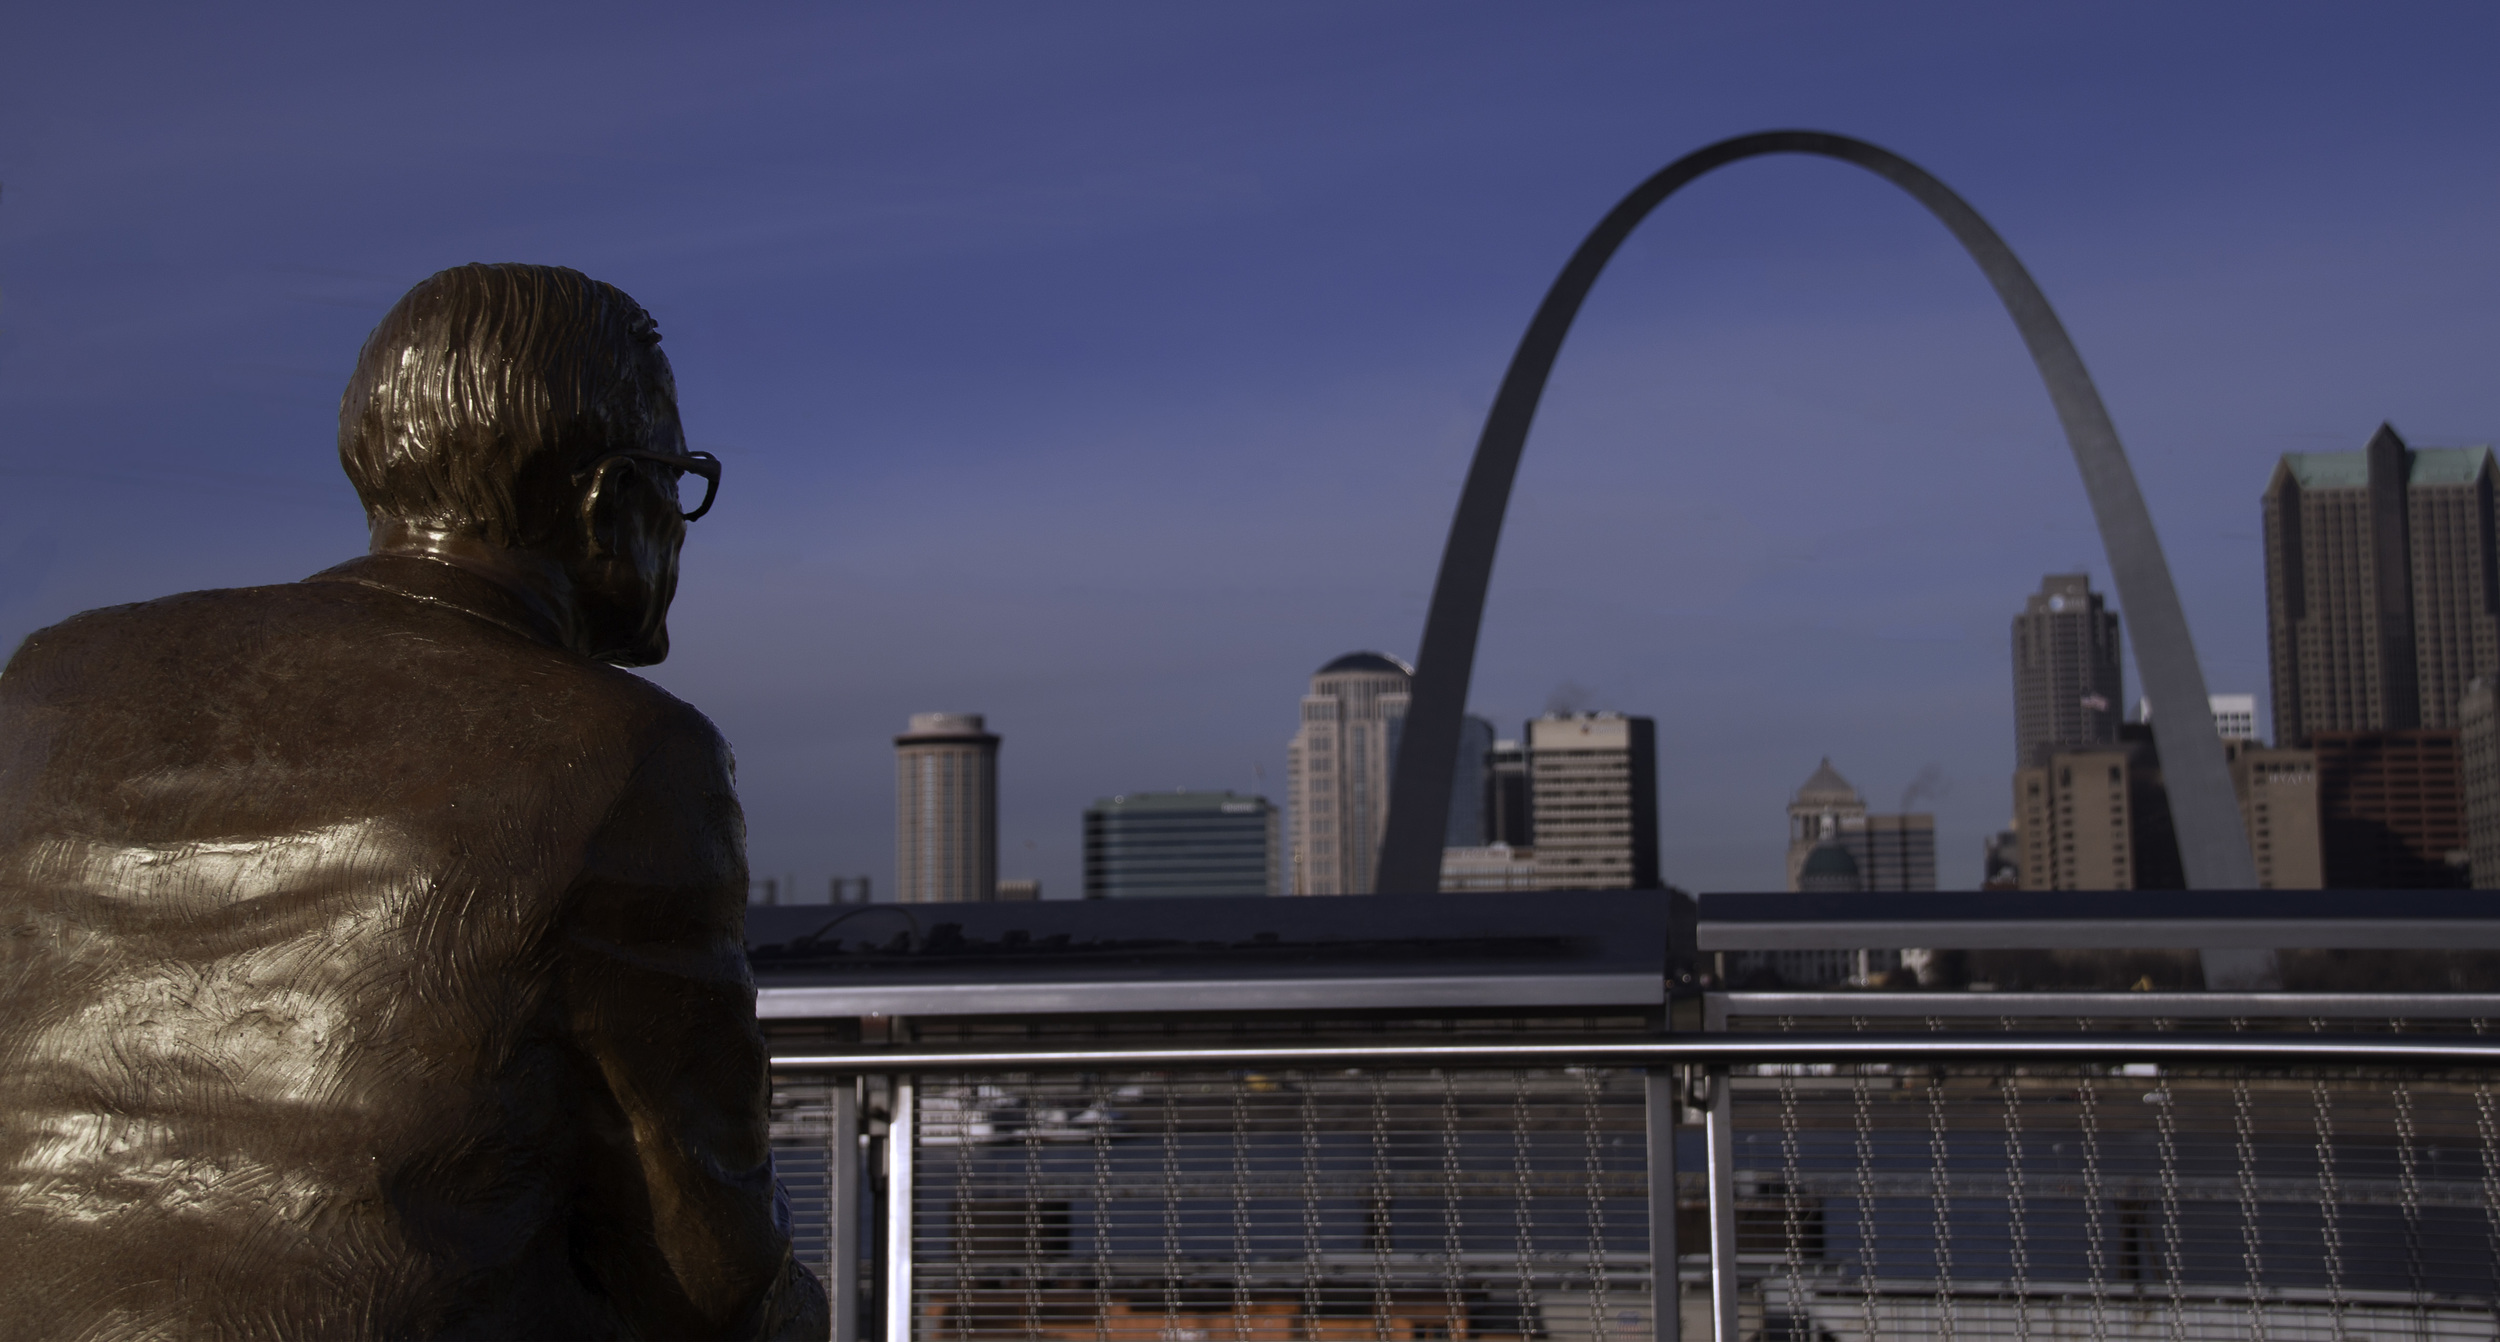 A shot behind the Malcom Martin Statue looking across the Mississippi River at the Gateway Arch